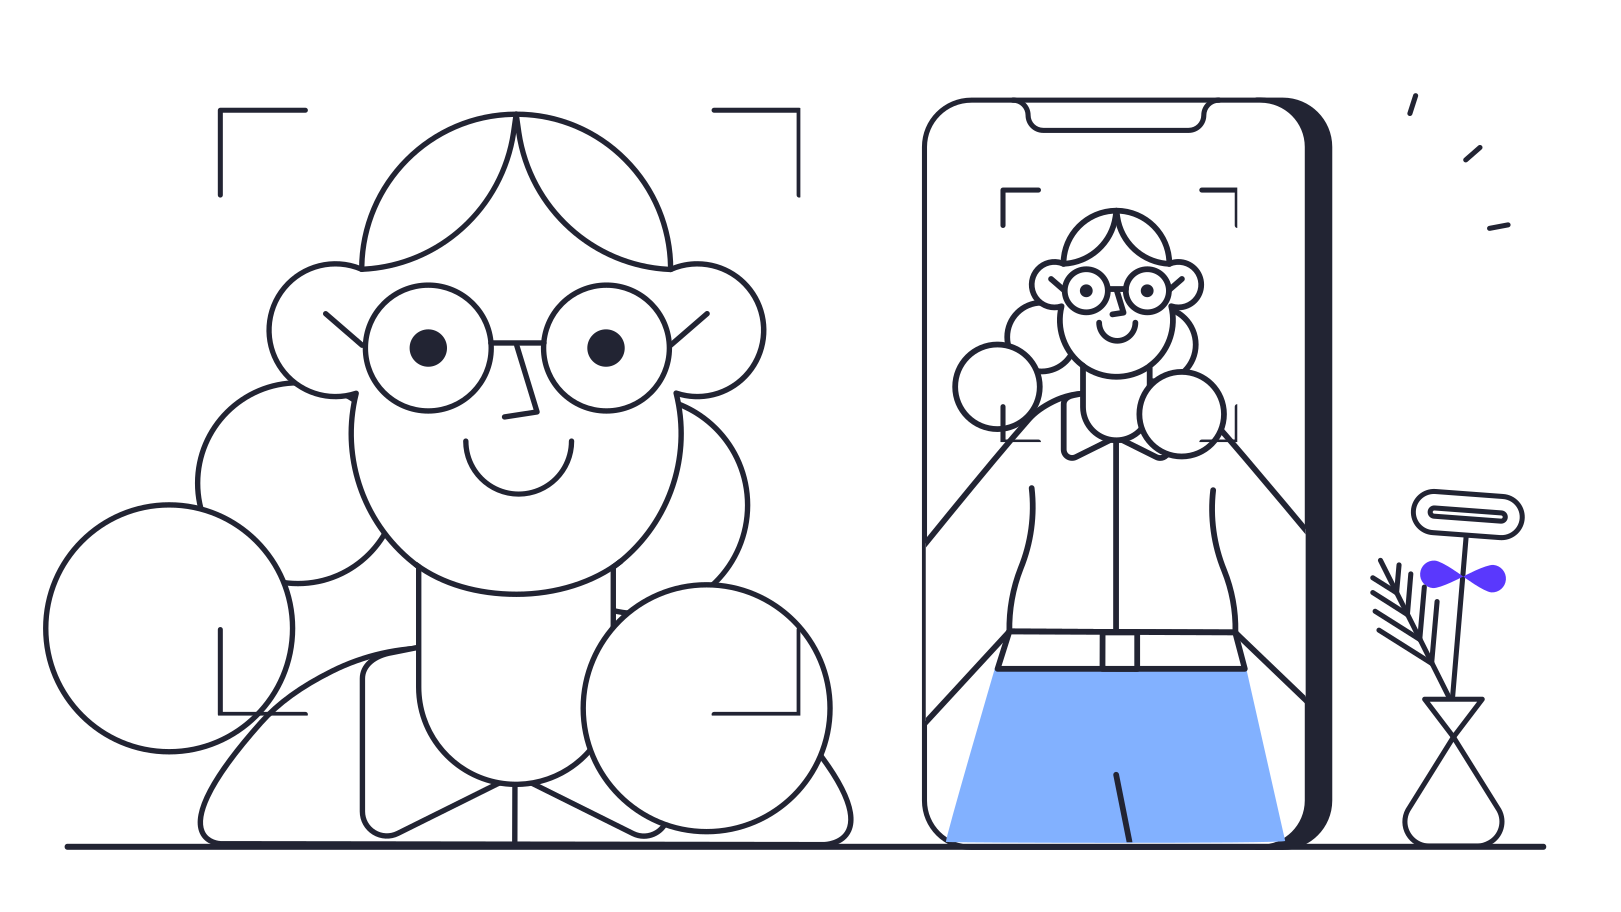 Face ID Clipart illustration in PNG, SVG